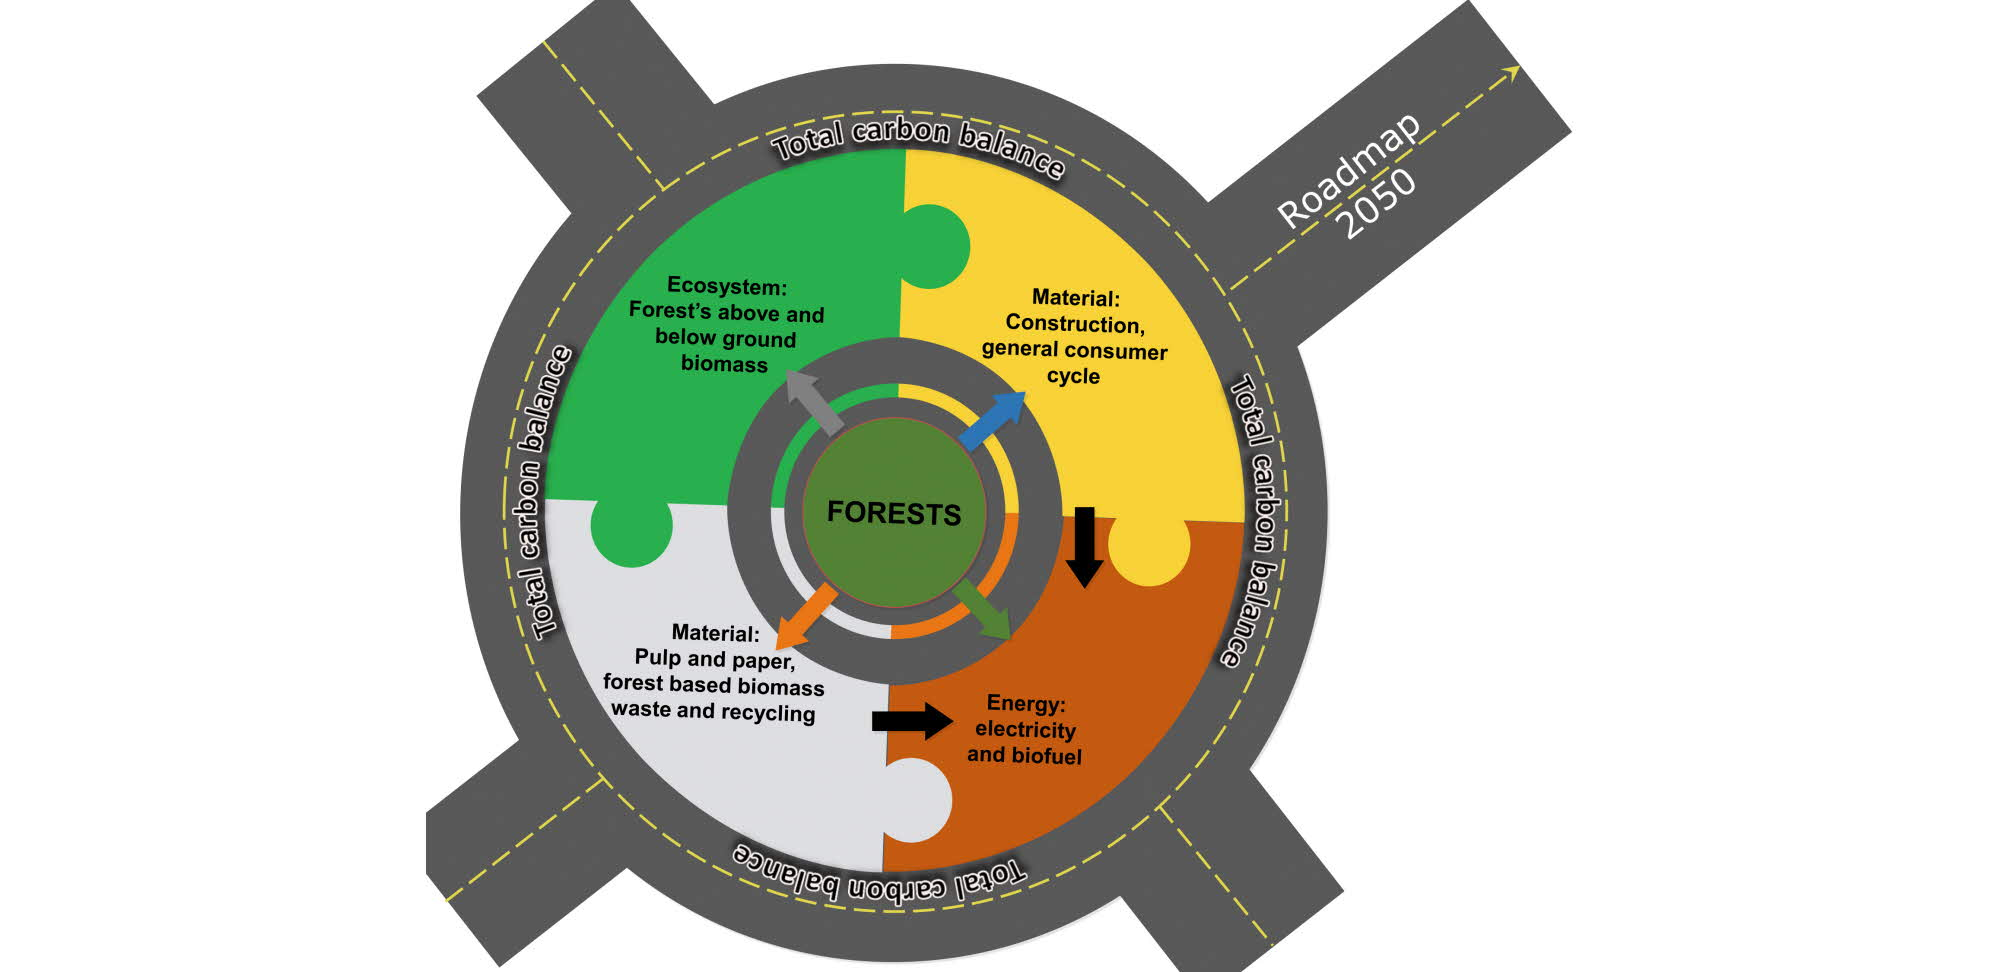 Swedish forestry sector's carbon balance